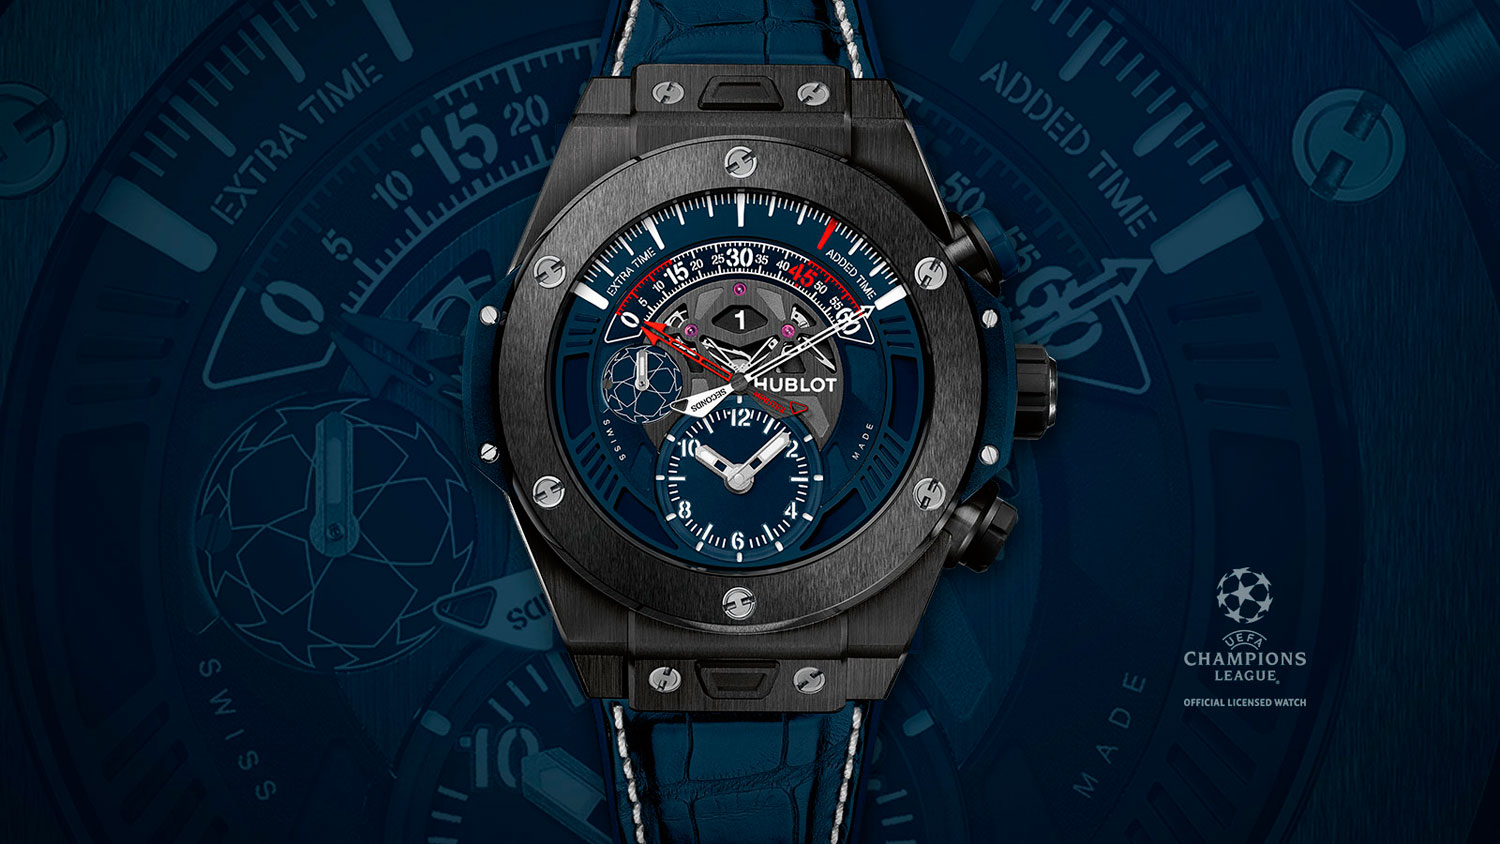 Big Bang Unico Retrograde Chronograph UEFA Champions League